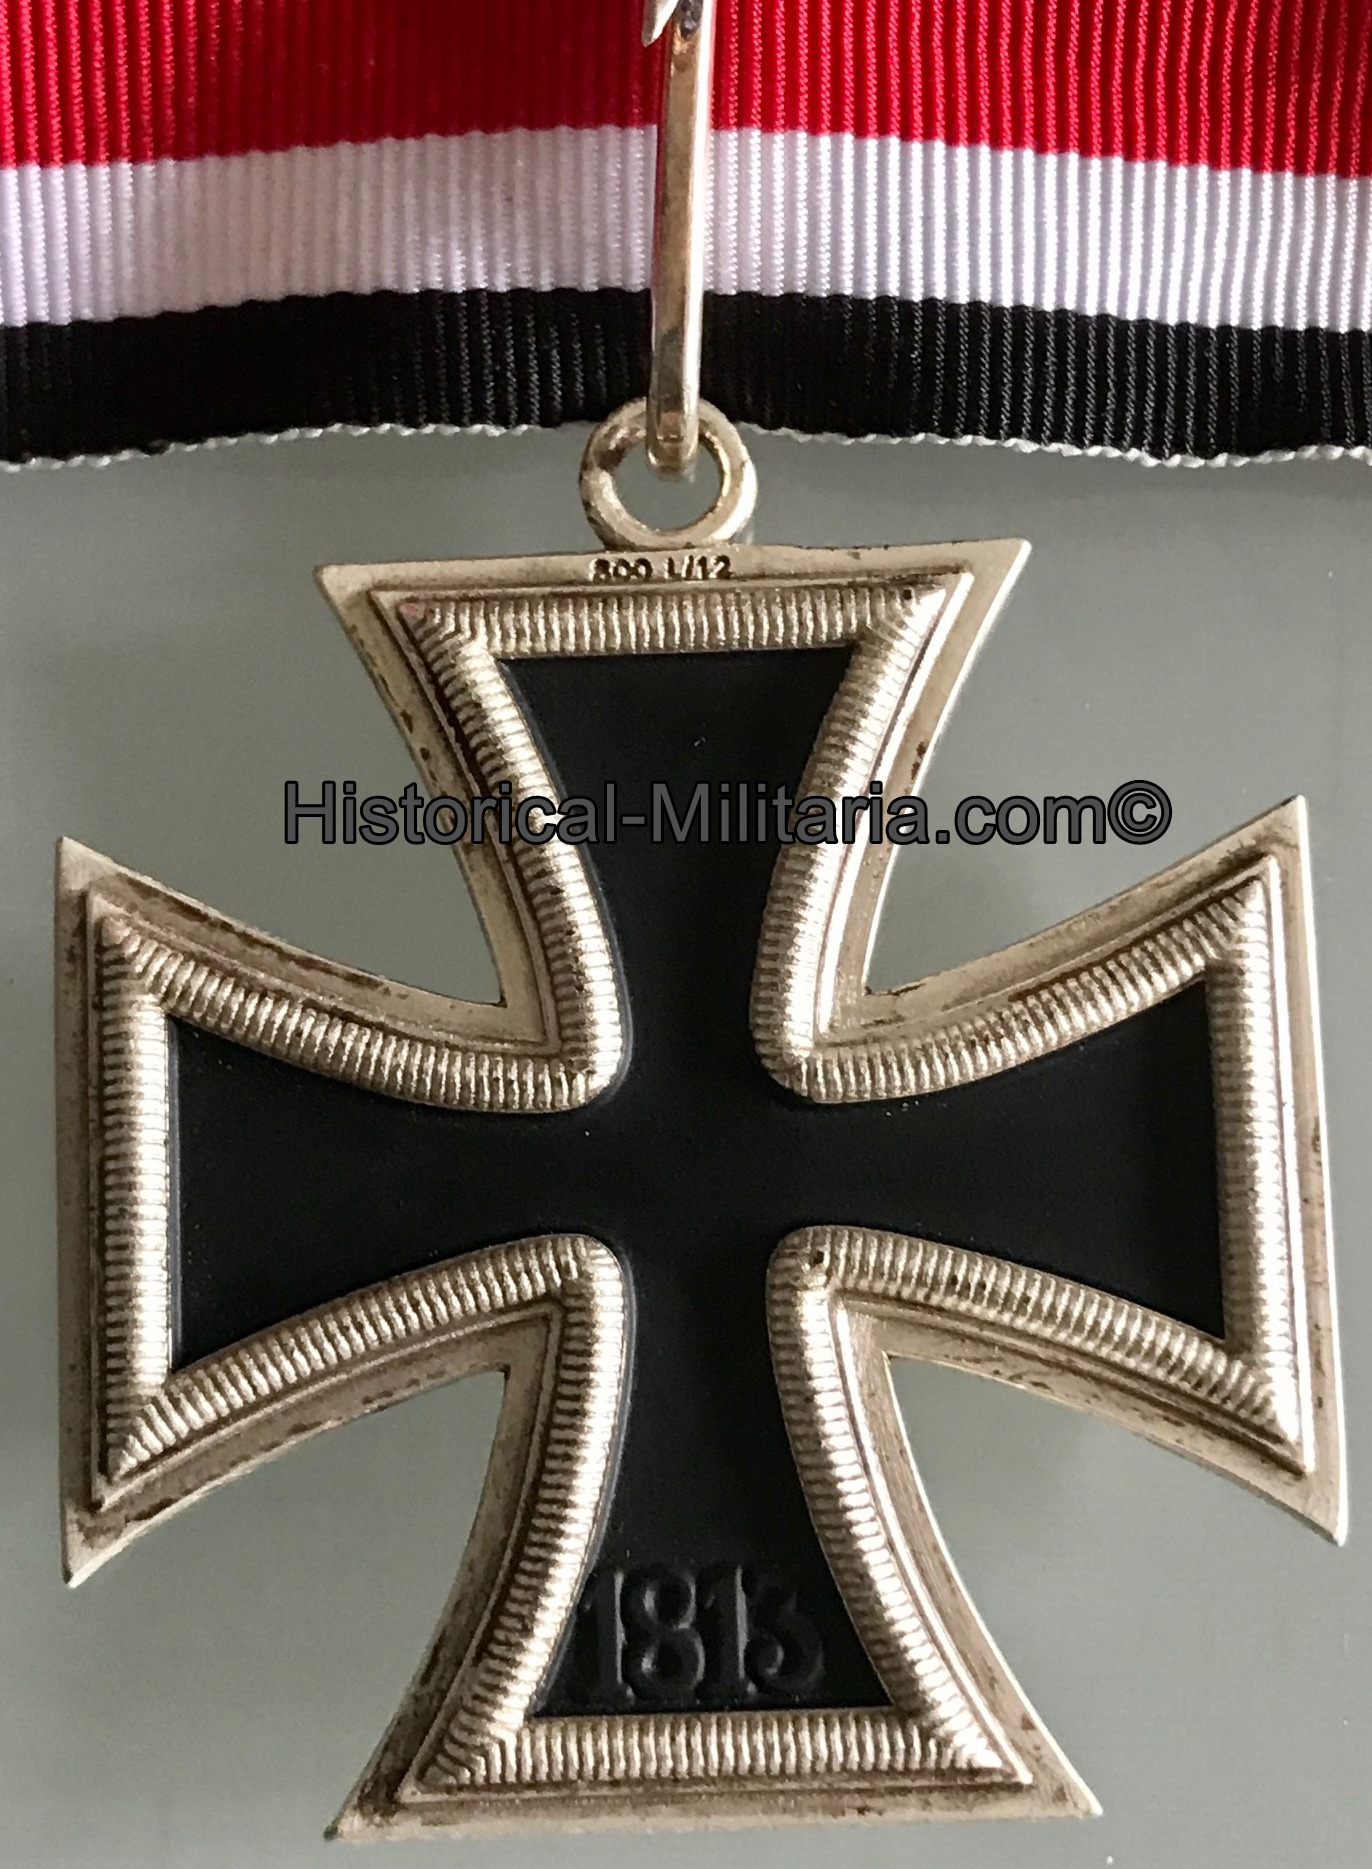 Ritterkreuz des Eisernen Kreuzes 1939 mit silbernem Eichenlaub, Schwertern und Brillanten - Knights Cross of the Iron Cross with Oakleaves, Swords + Diamonds Medal - La croce di cavaliere con fronde di quercia in argento, spade e diamanti